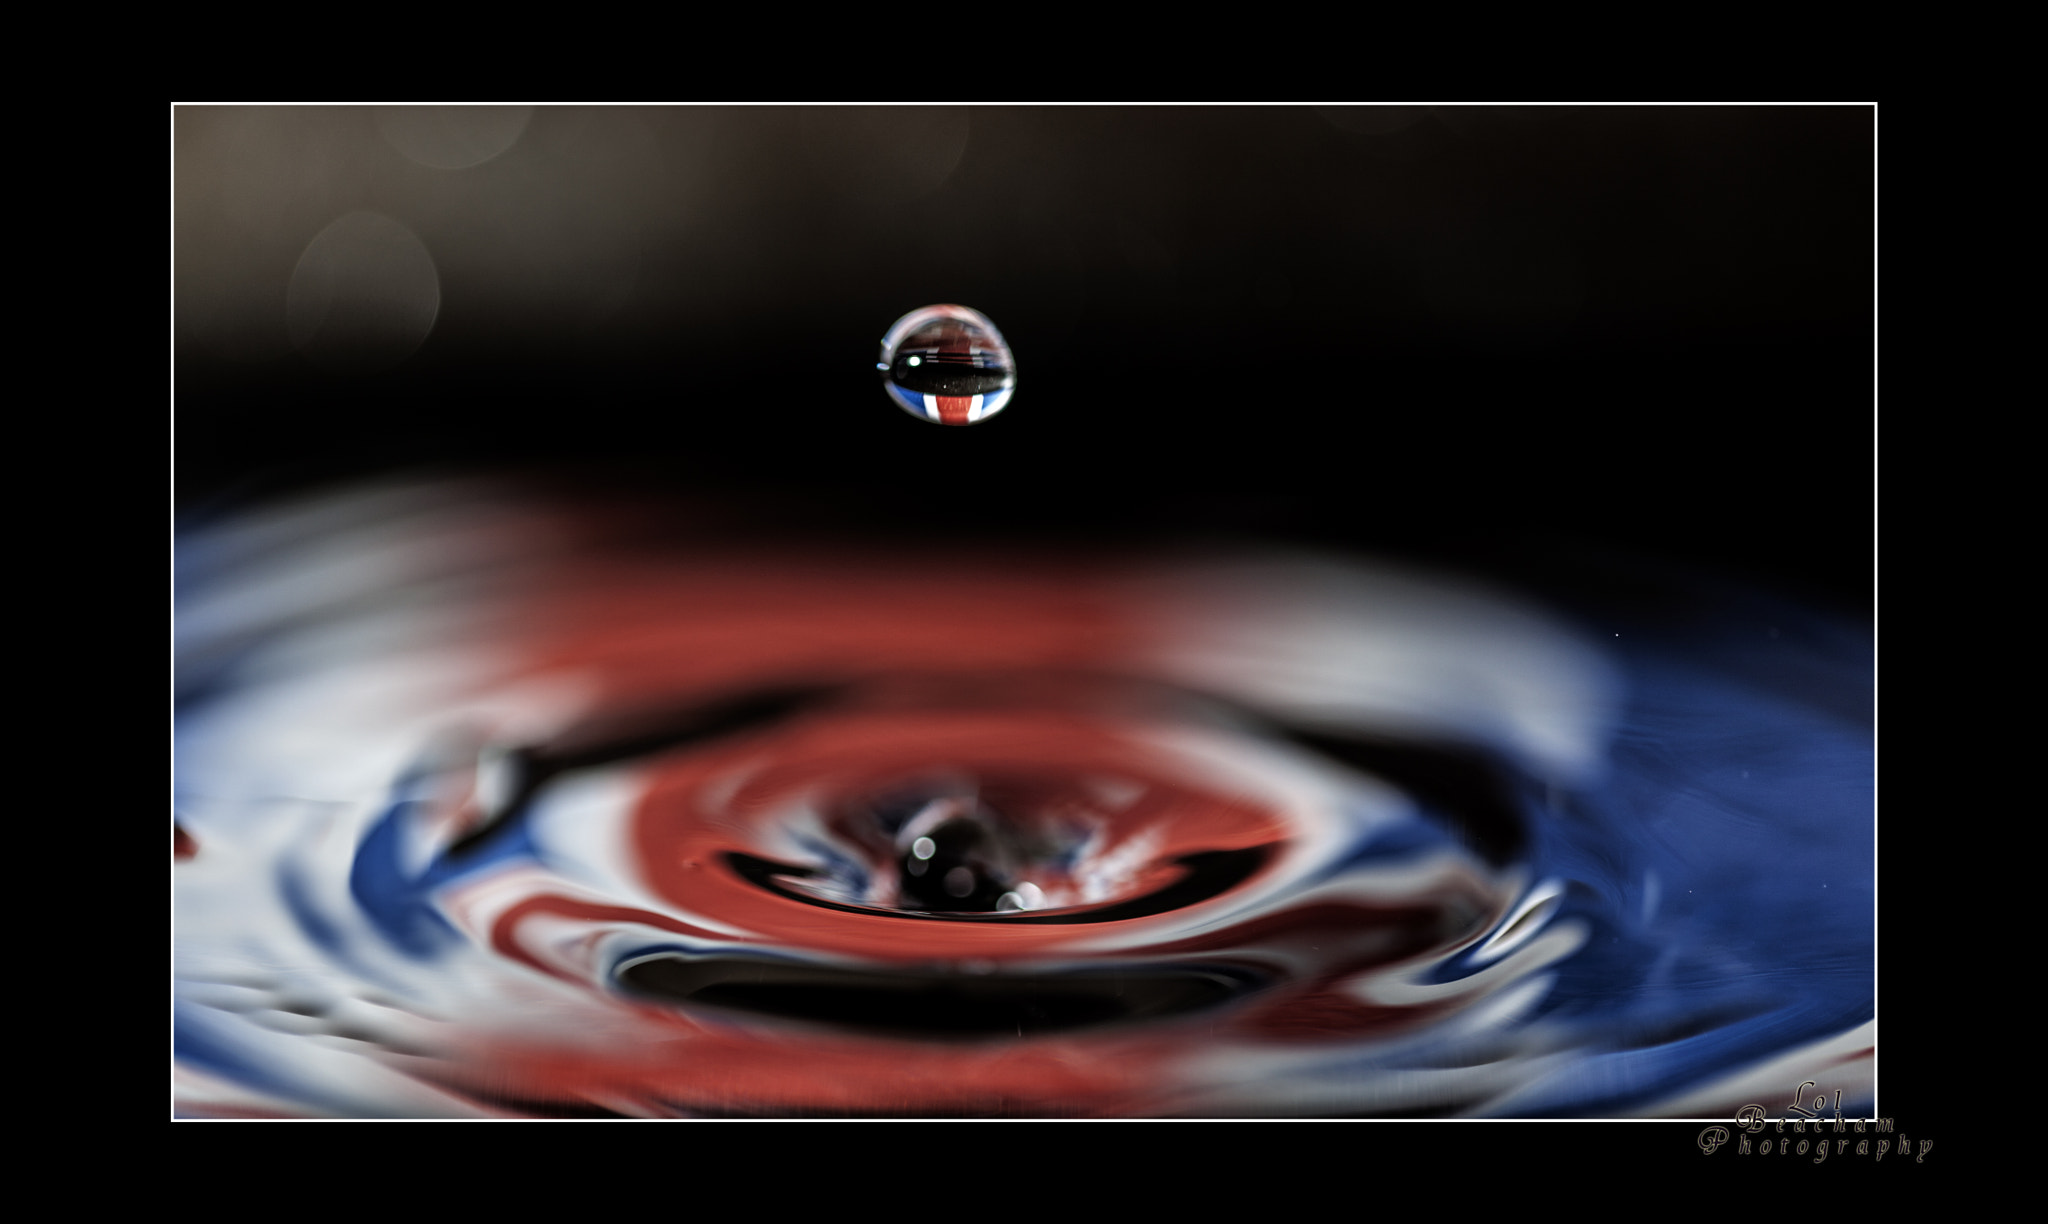 Photograph Splash 01 by Lol Beacham on 500px